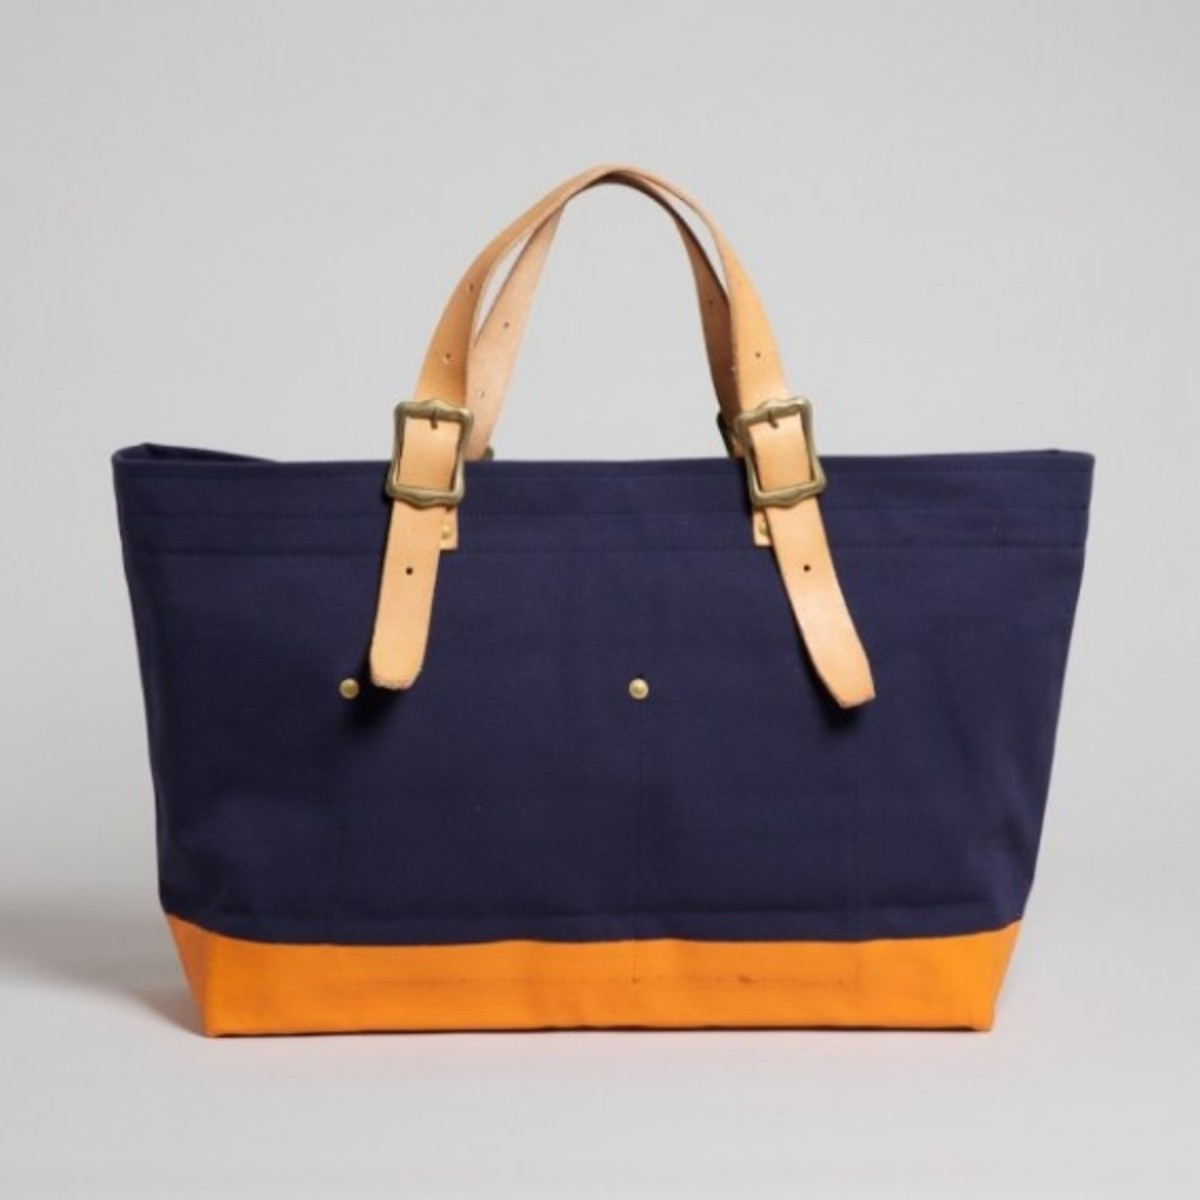 superior-labor-engineer-tote-bag-02